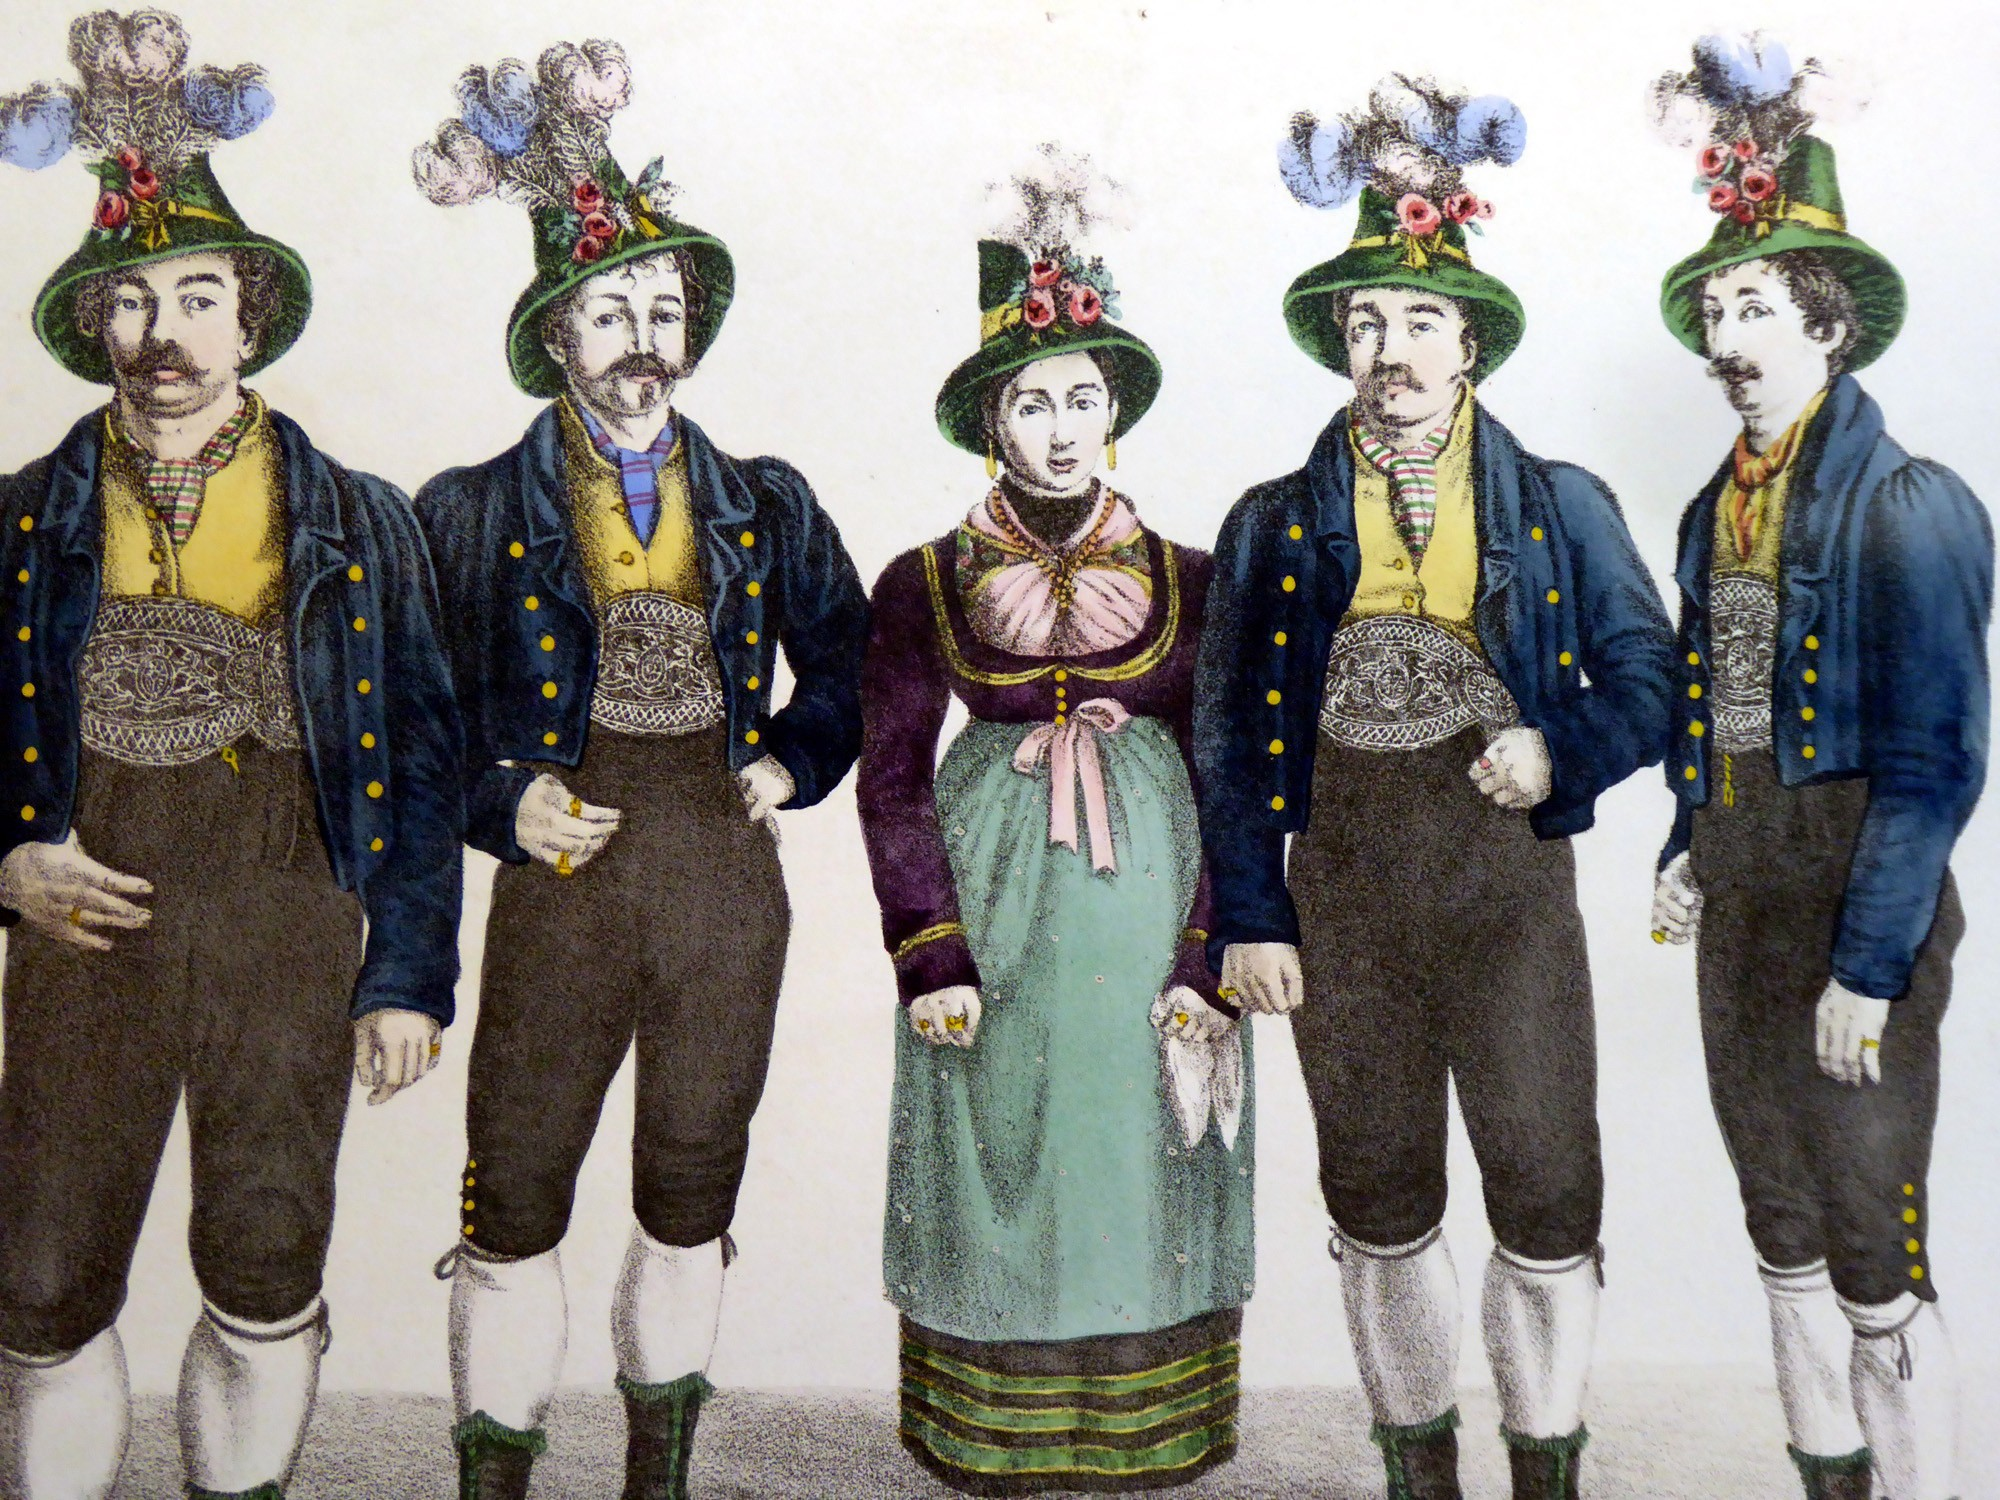 An illustration of the Rainer Family Singers, for men and one woman